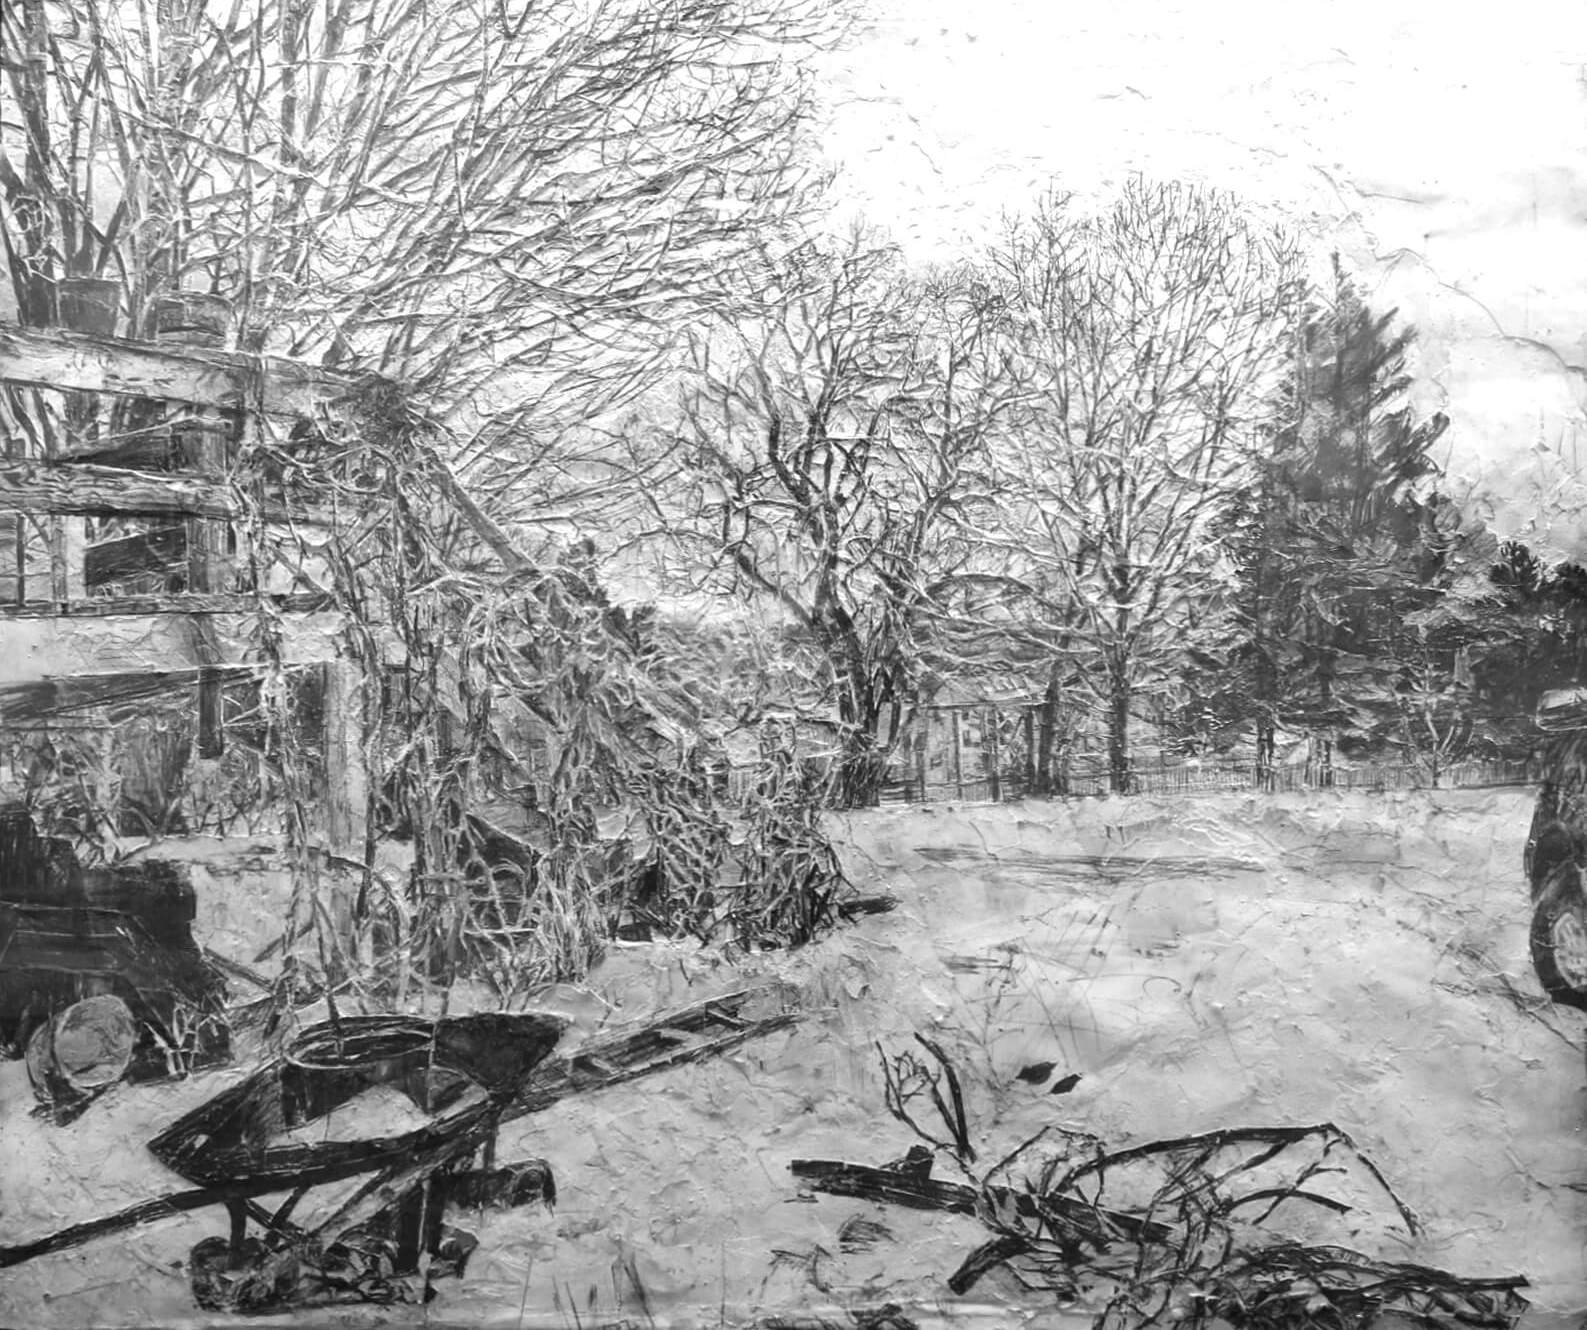 (detail) Stanley Lewis, View from Studio Window, 2003-4, graphite on paper, approx. 45 x 51 inches (From the Louis-Dreyfus Family Collection, courtesy of The William Louis-Dreyfus Foundation Inc.)